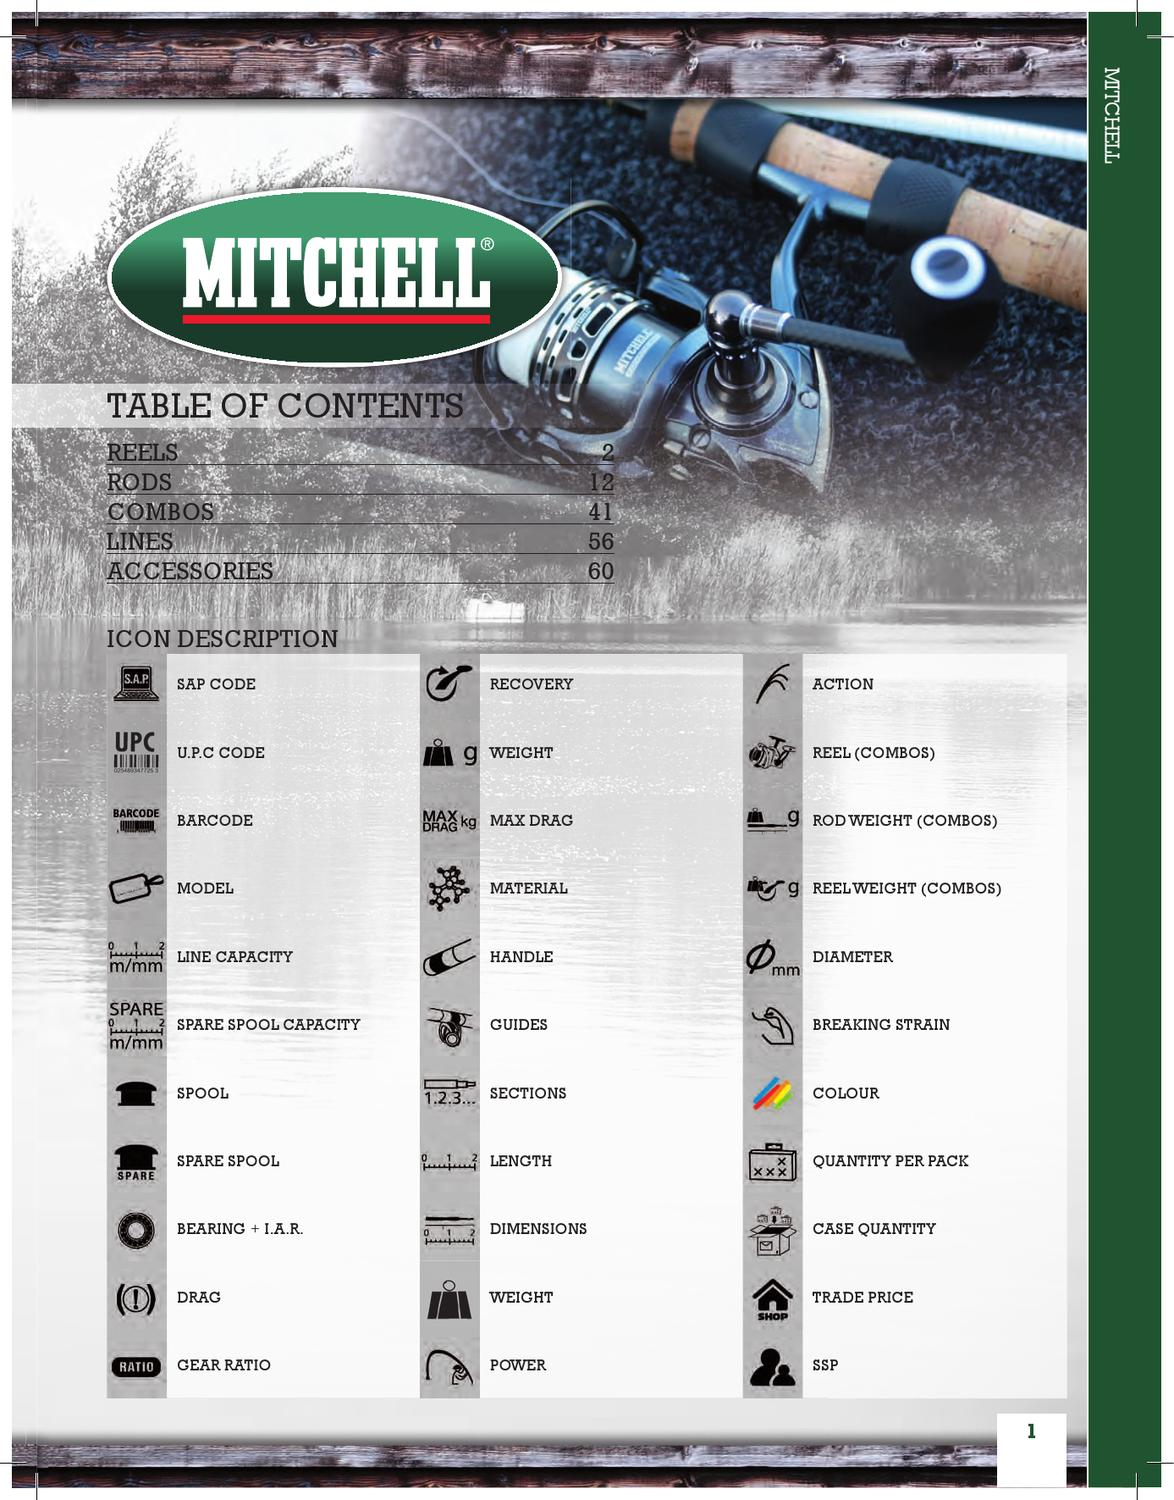 MITCHELL MAG PRO ADVANCED 662mh 1,98 m 8//32 Spin